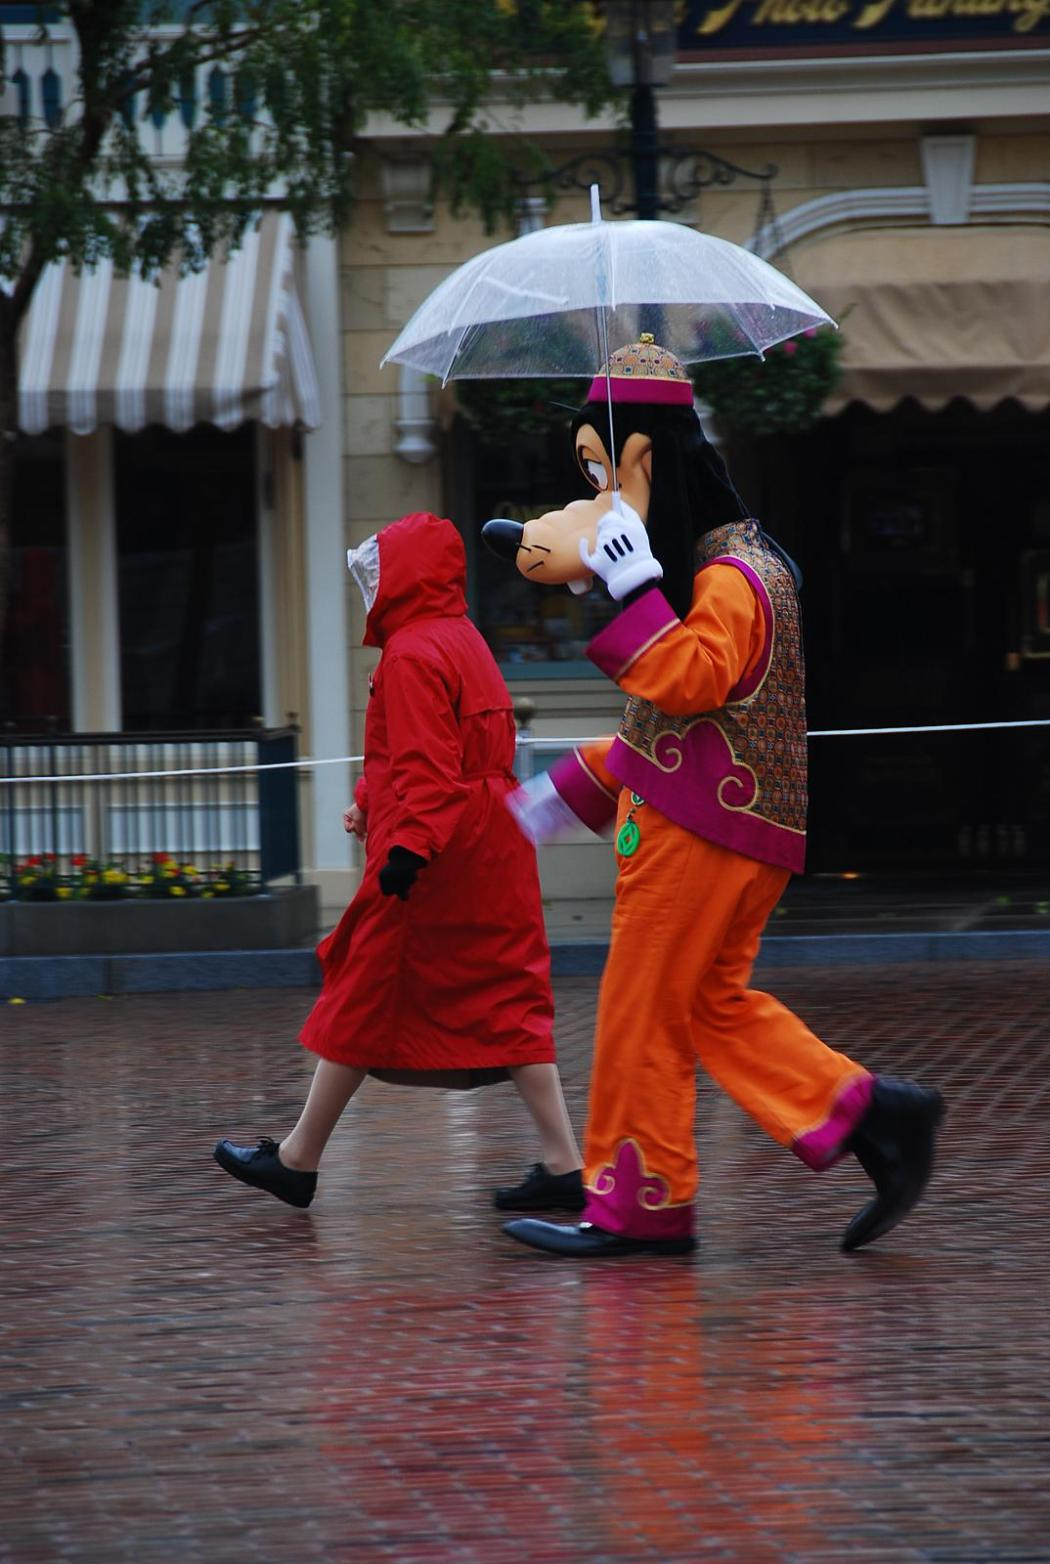 Goofy at Hong Kong Disneyland